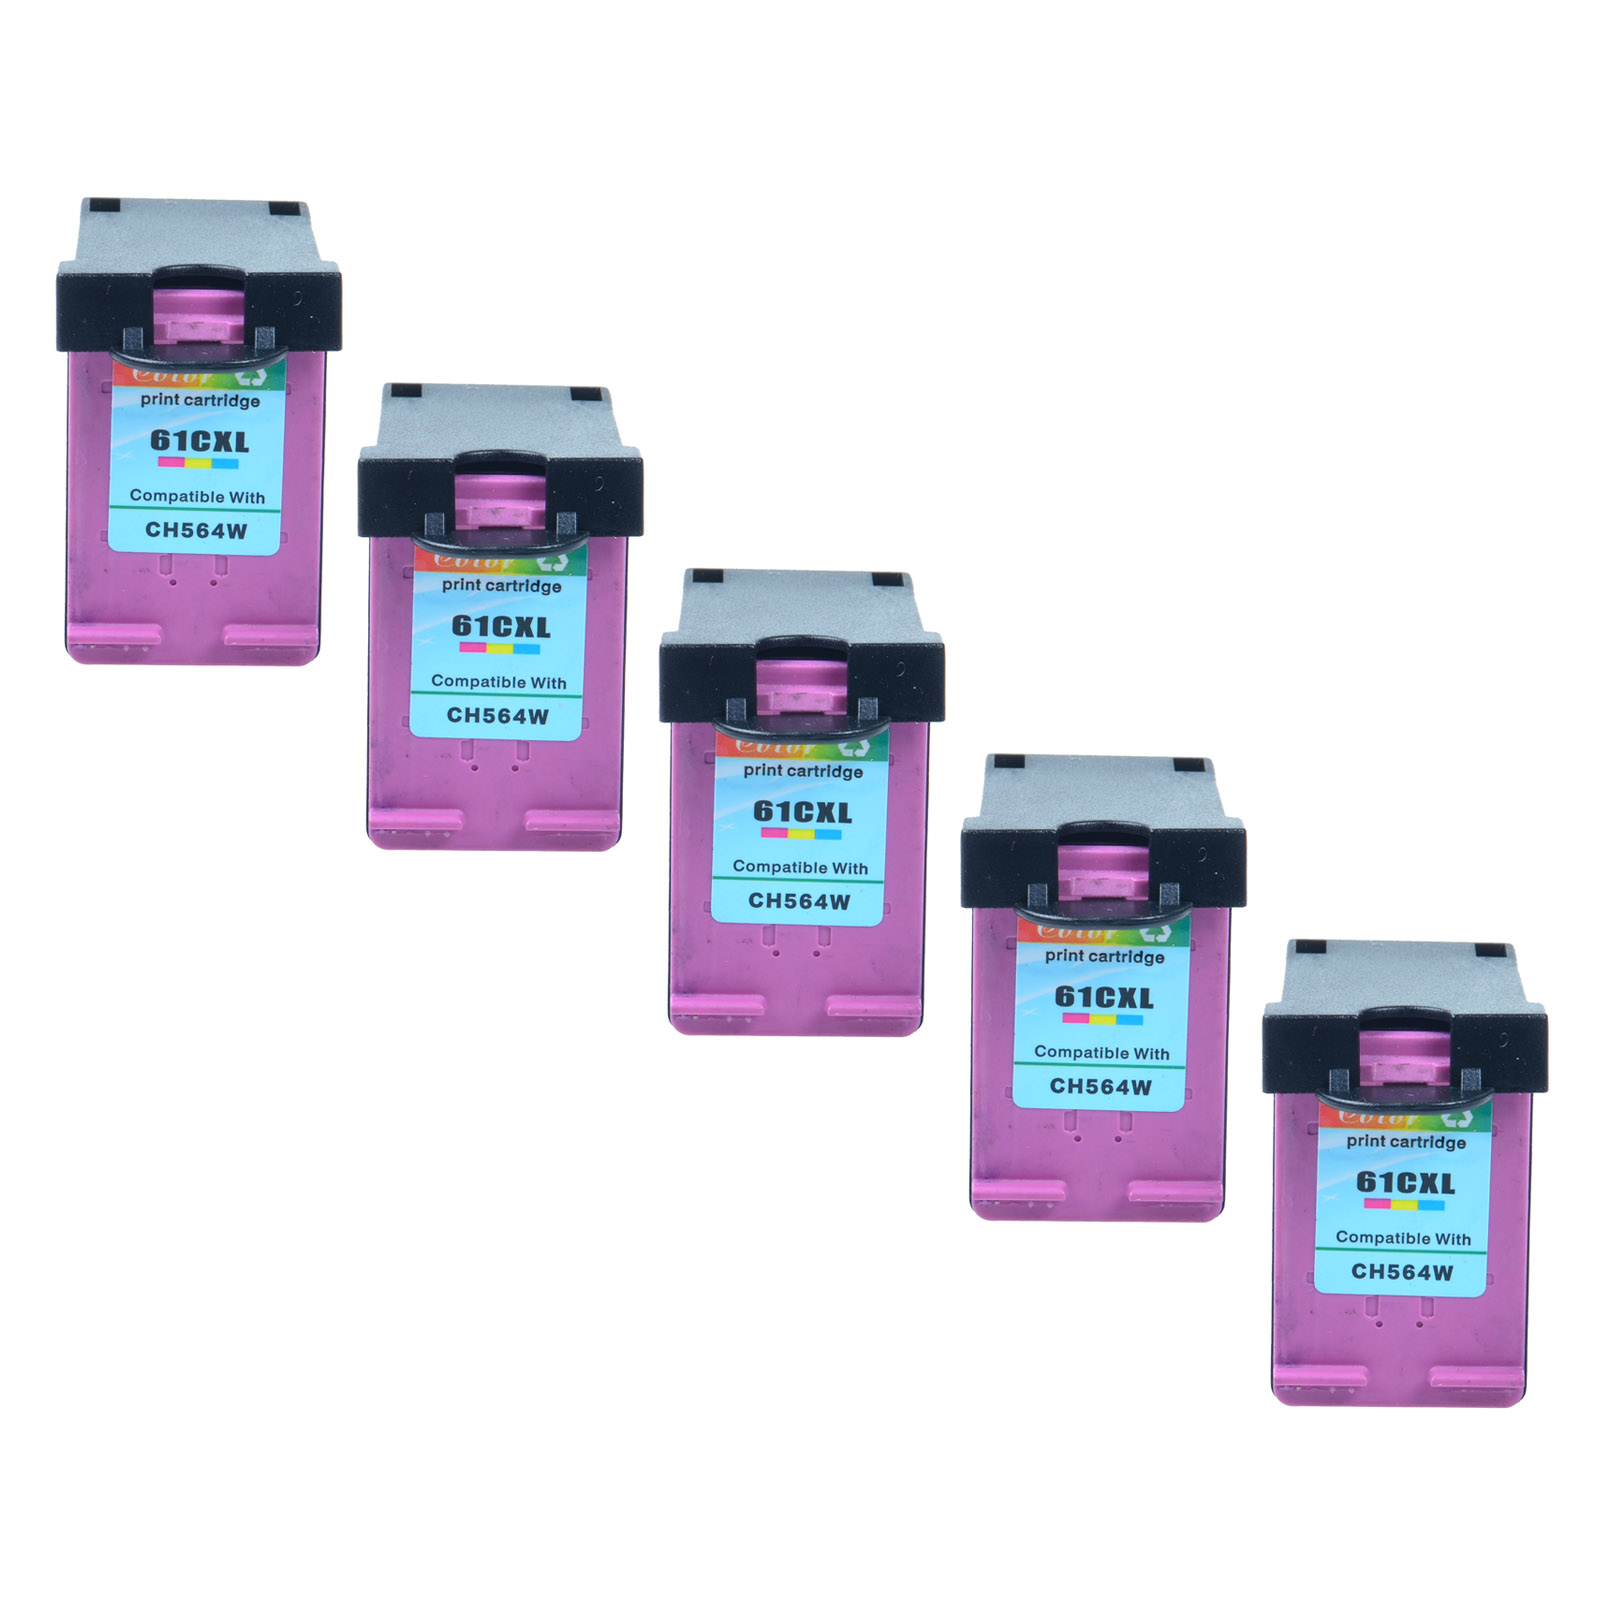 5PK Replacement HP 61XL Ink Cartridge for HP Deskjet 3051A 3056A 3511 2543 8040